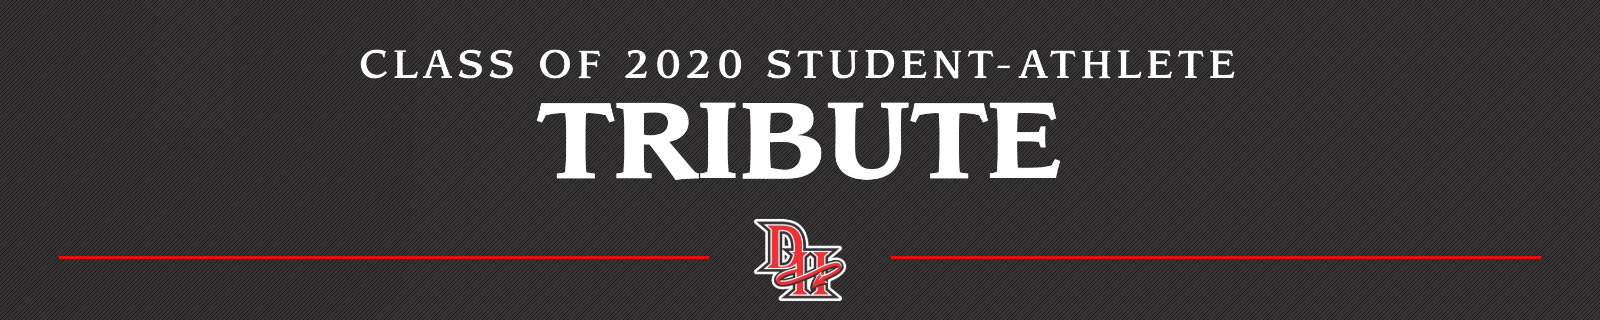 TRIBUTE TO CLASS OF 2020 STUDENT-ATHLETES